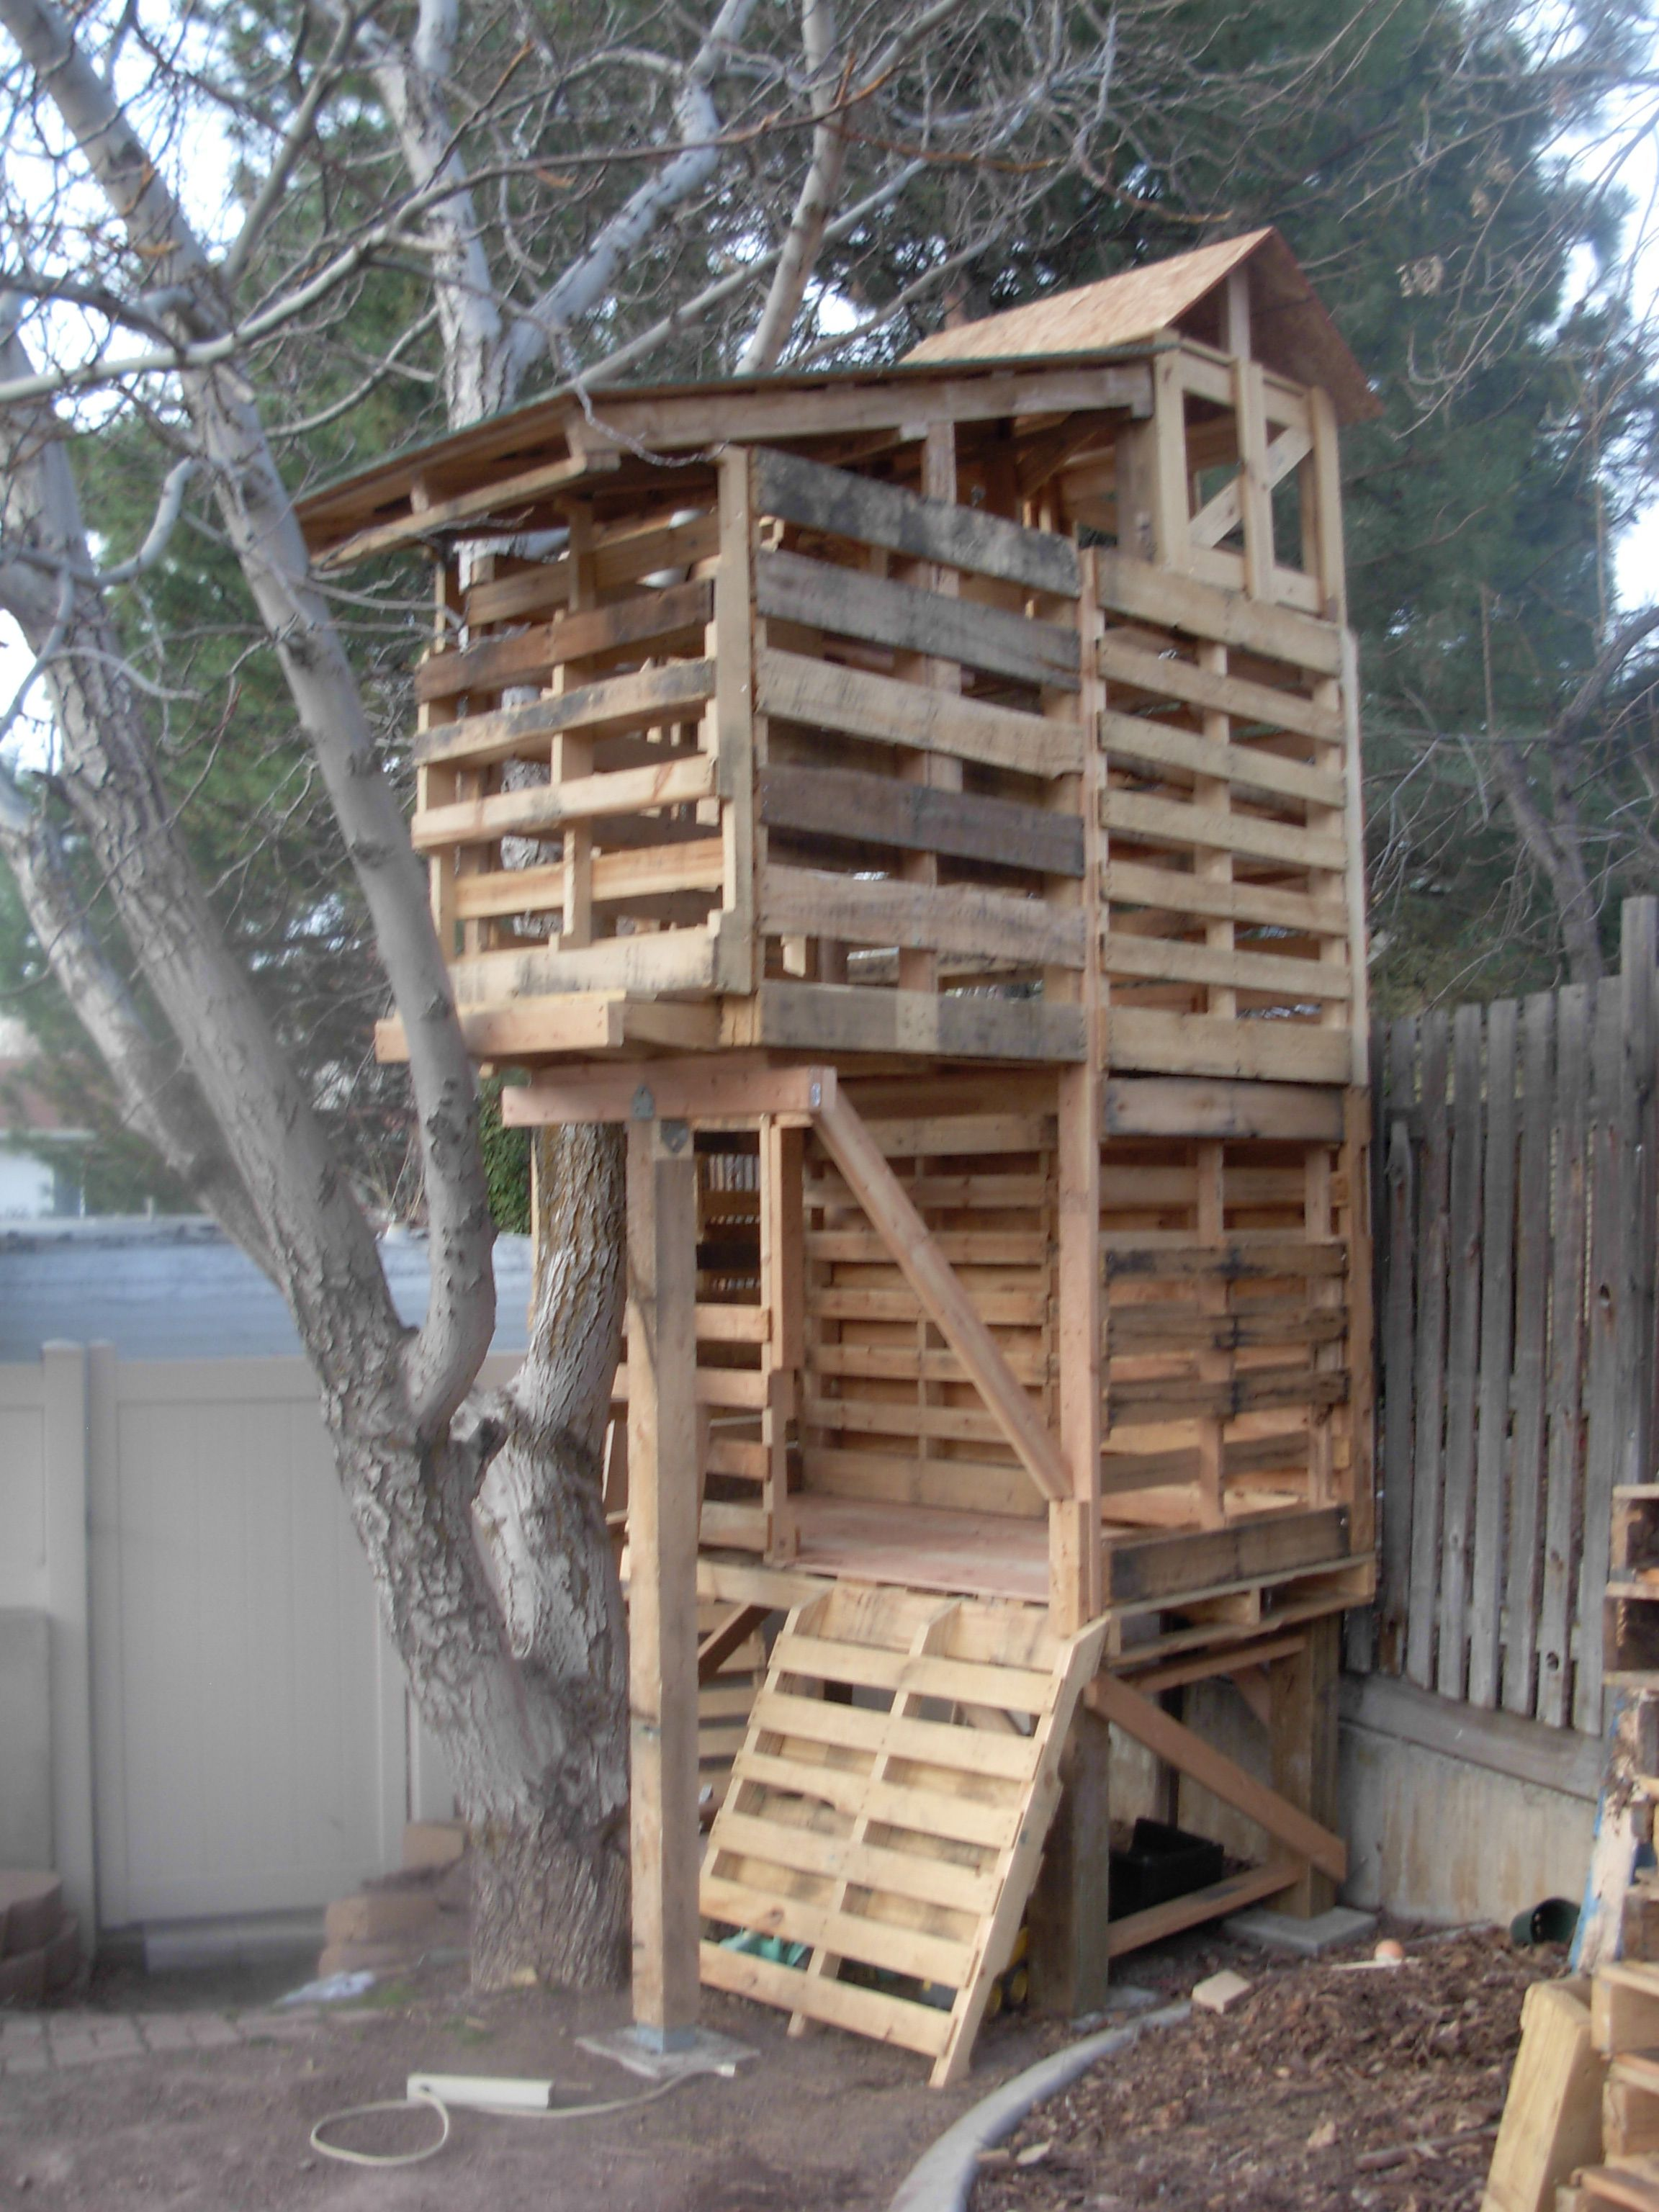 Awesome Pallet Treehouse | Pallets - Euroalused | Pinterest | Pallet on off the grid house designs, trailer house designs, paint house designs, best house designs, flat house designs, 2nd floor house designs, crates house designs, mcpe house designs, wooden house designs, palate house designs, wheel house designs, eco house designs, 2015 house designs, cheap house designs, tiny house designs, single level house designs, traditional house designs, construction house designs, adobe house designs, bottle house designs,